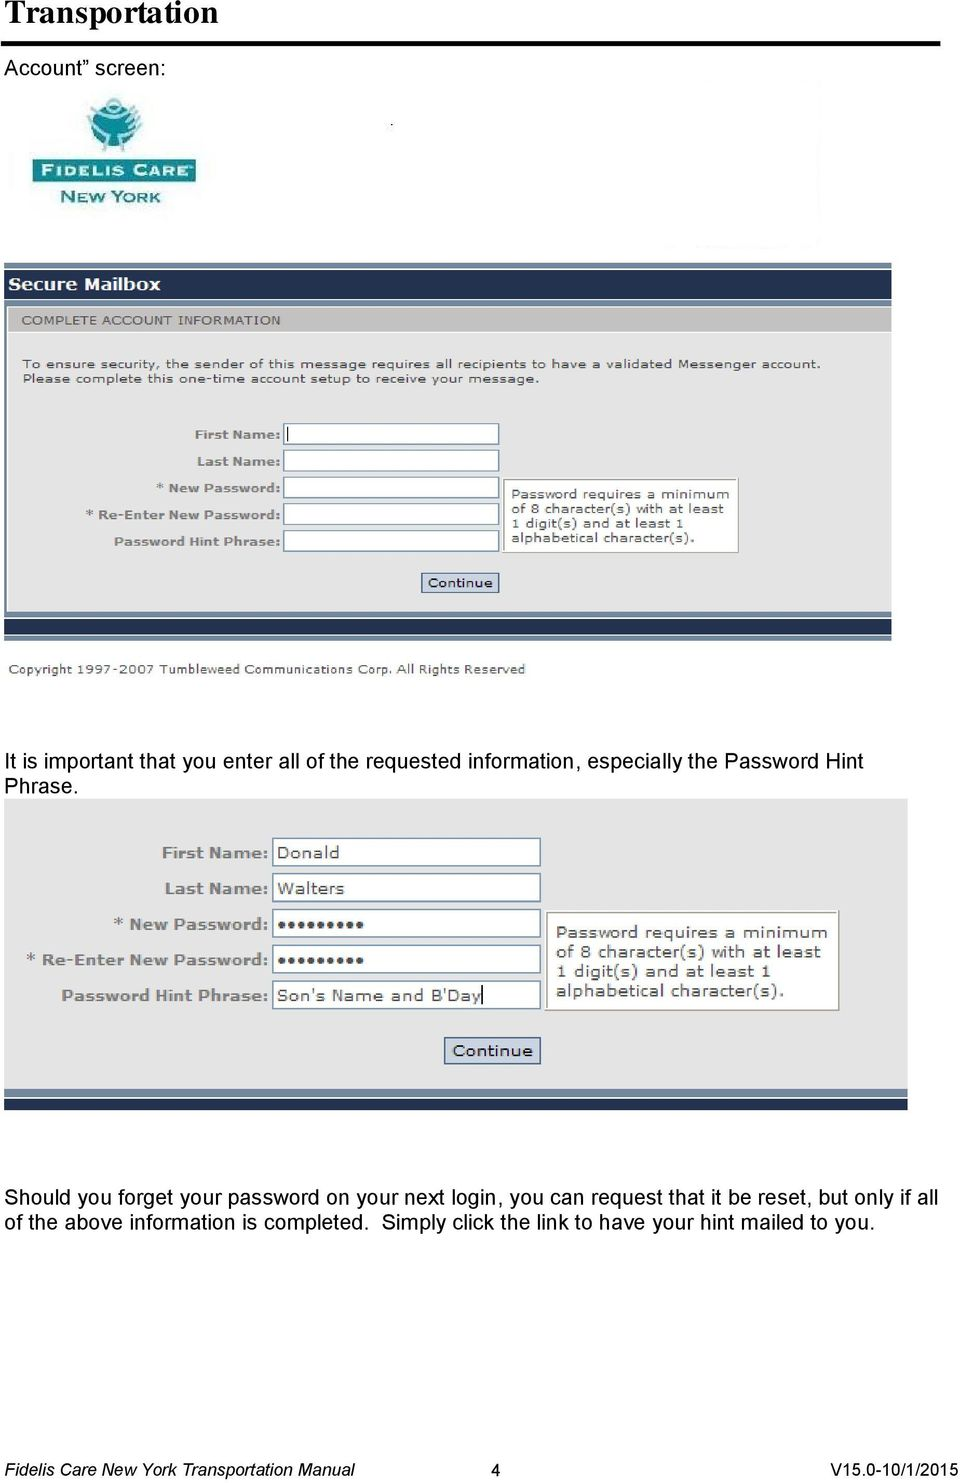 Should you forget your password on your next login, you can request that it be